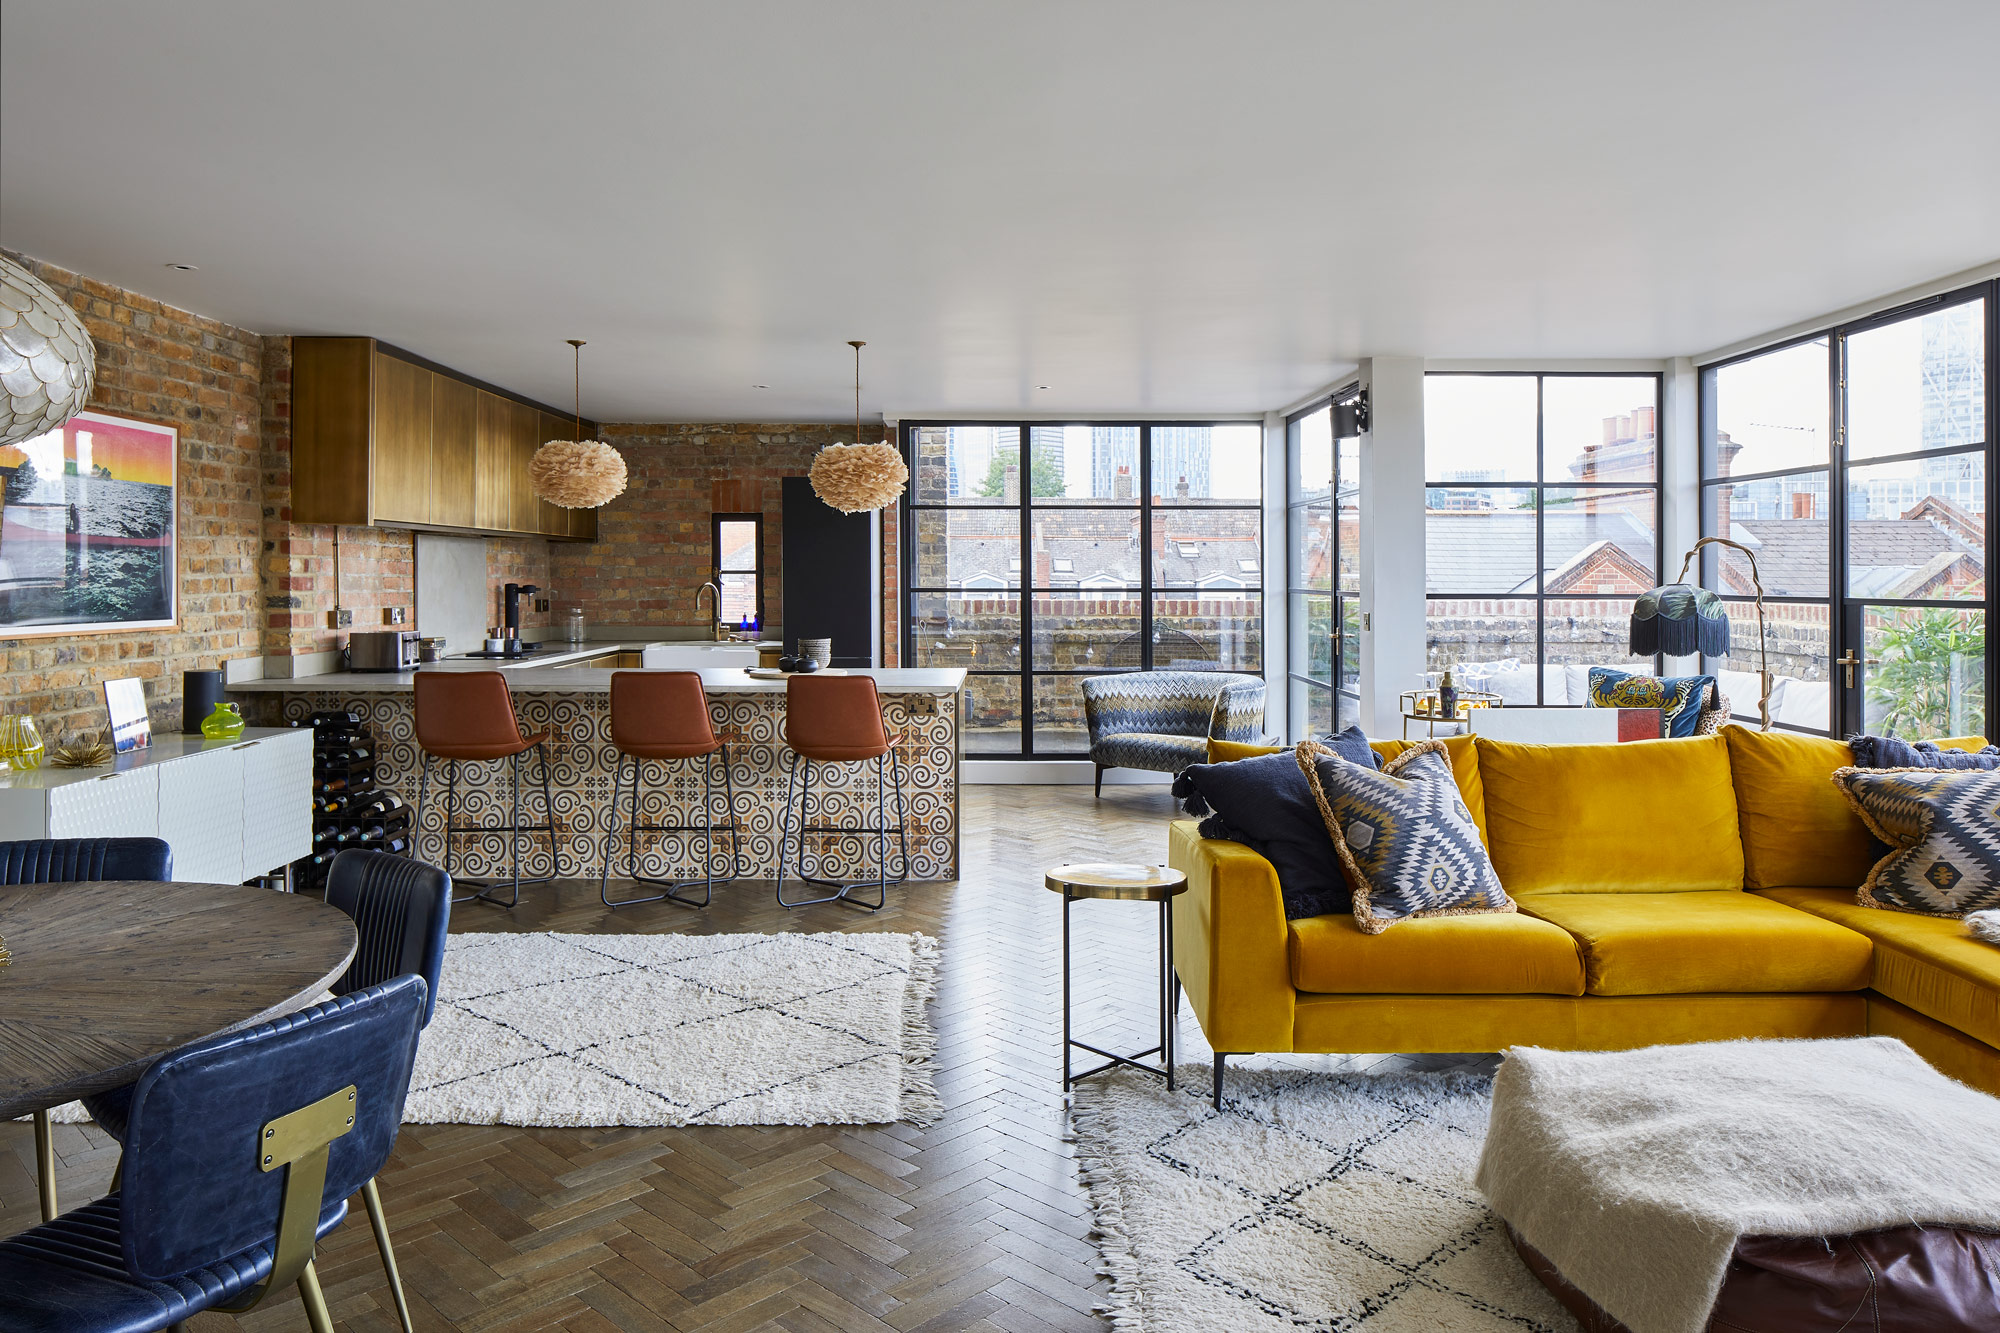 Open plan London flat with yellow sofa and metal kitchen